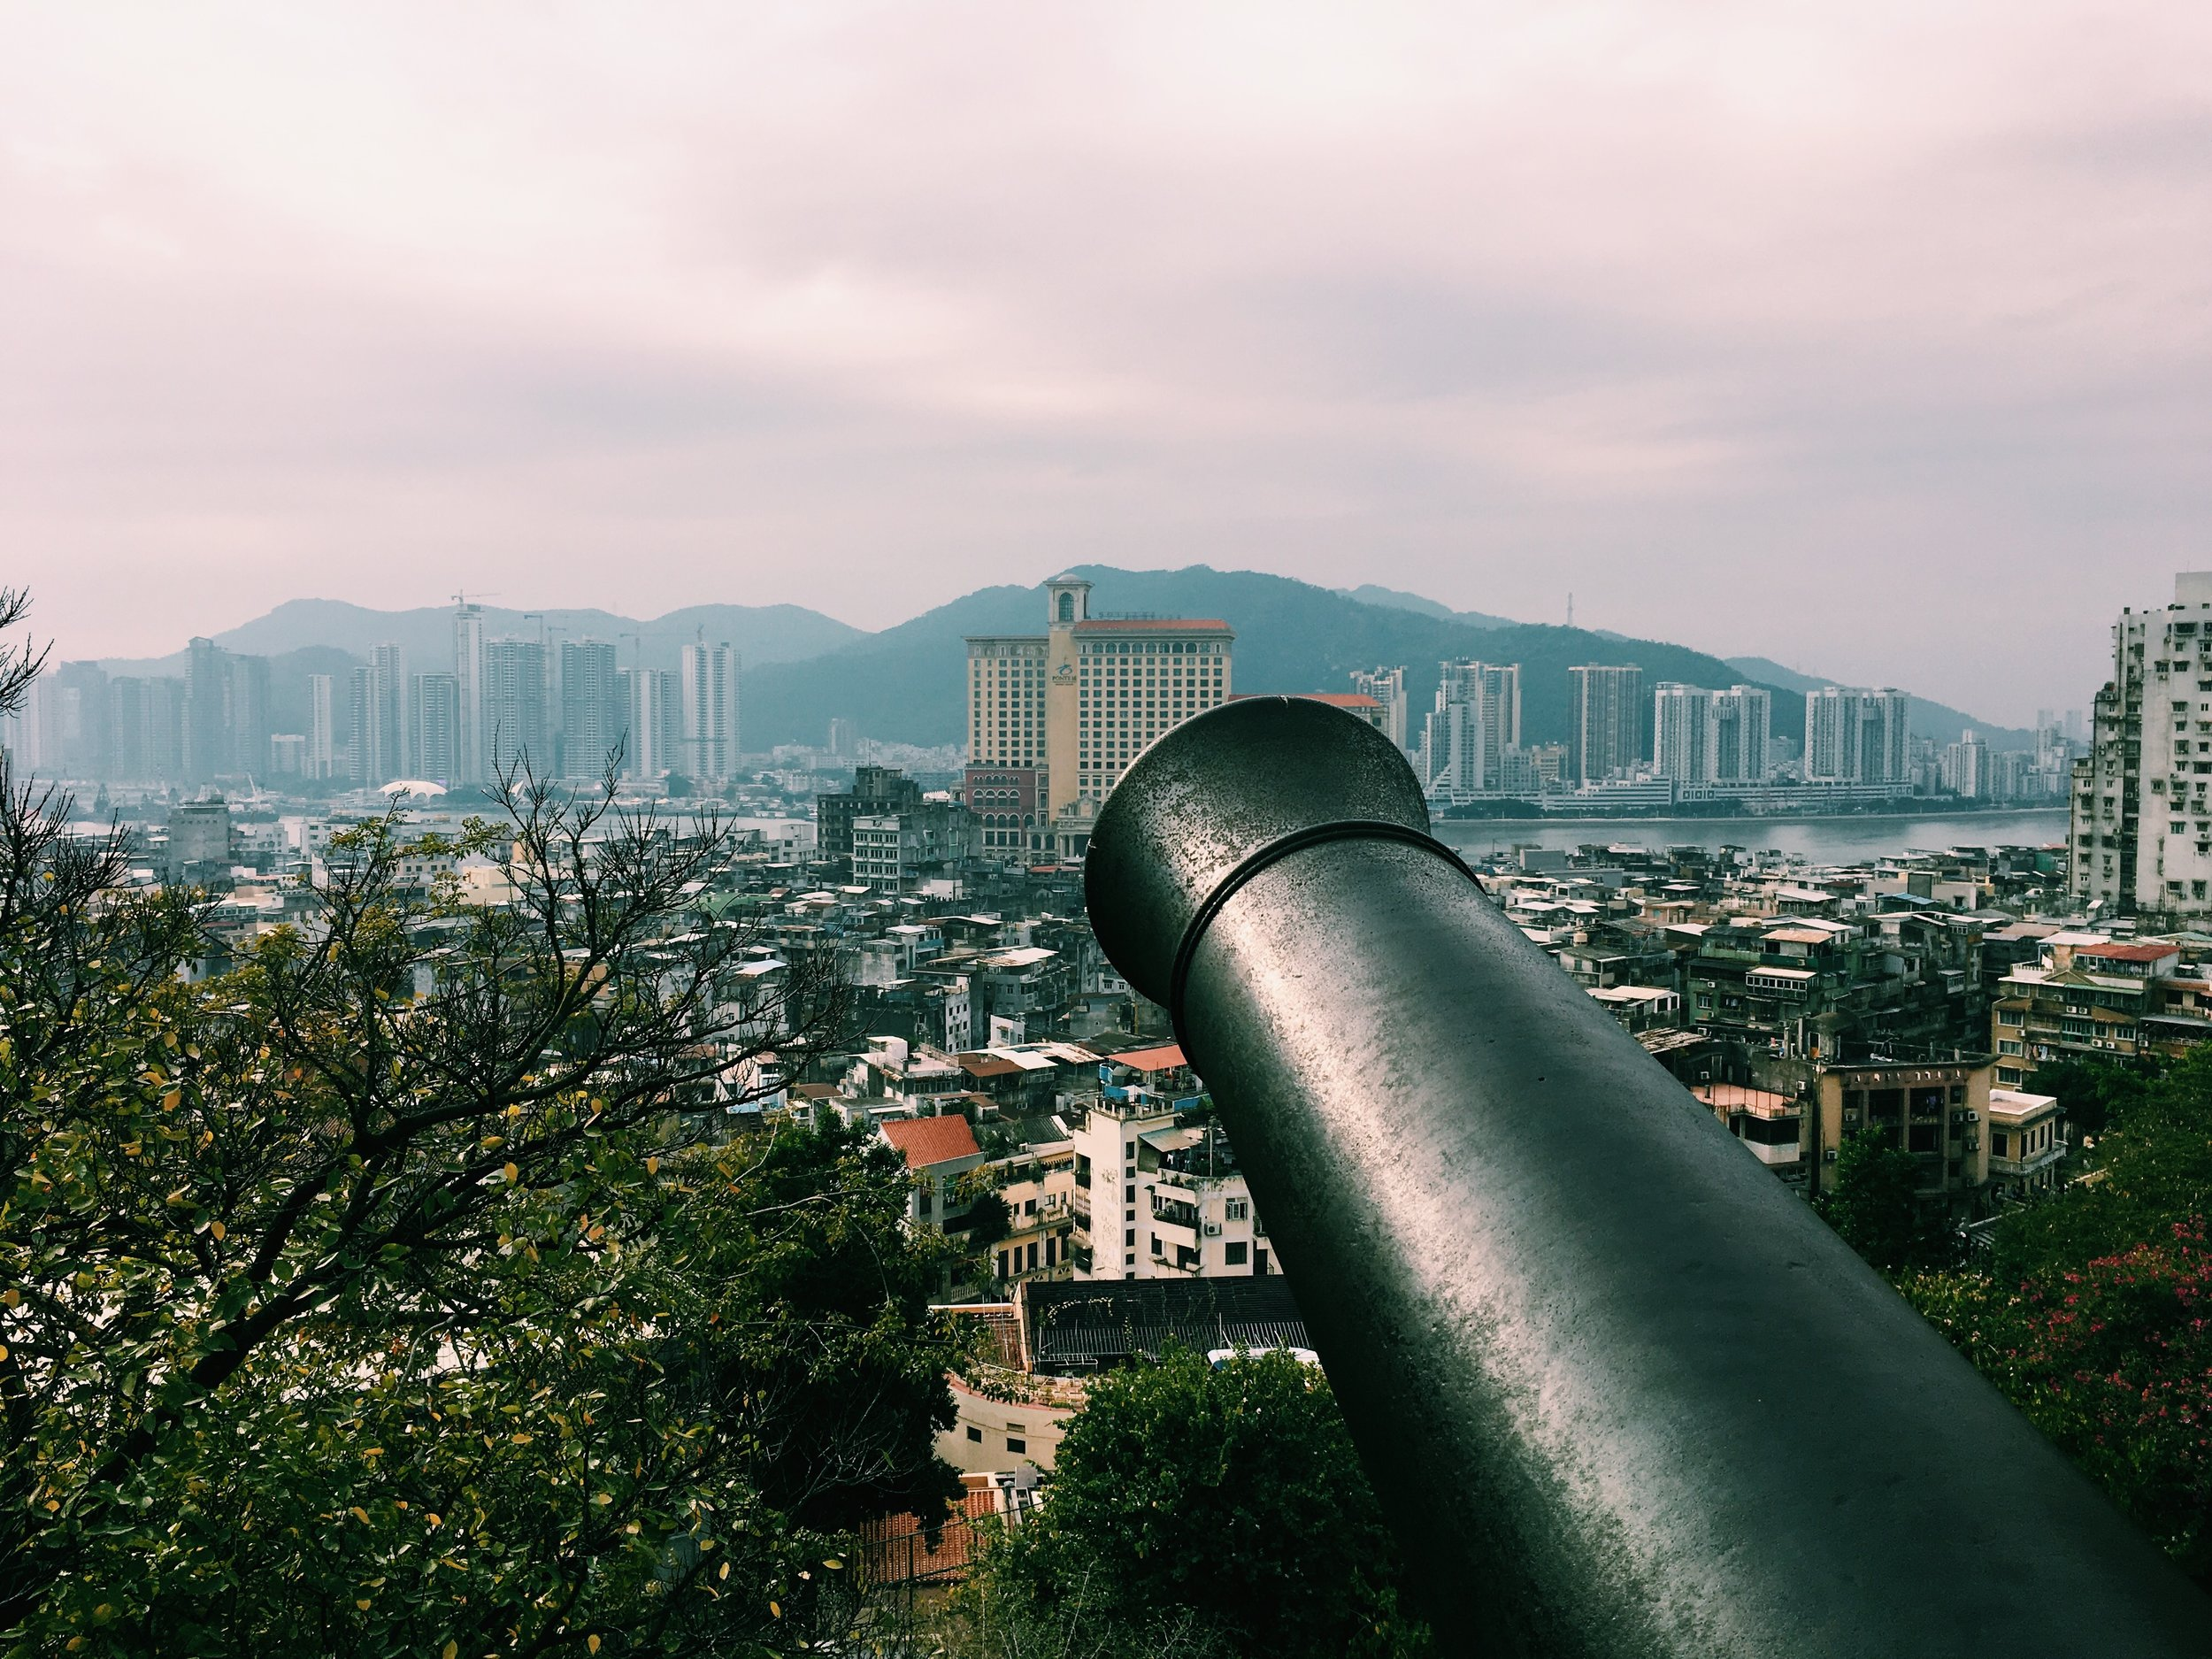 On Monte Fort / Mount Fortress overlooking Macau Peninsula and the river that seperates Macau and Zhu Hai, China